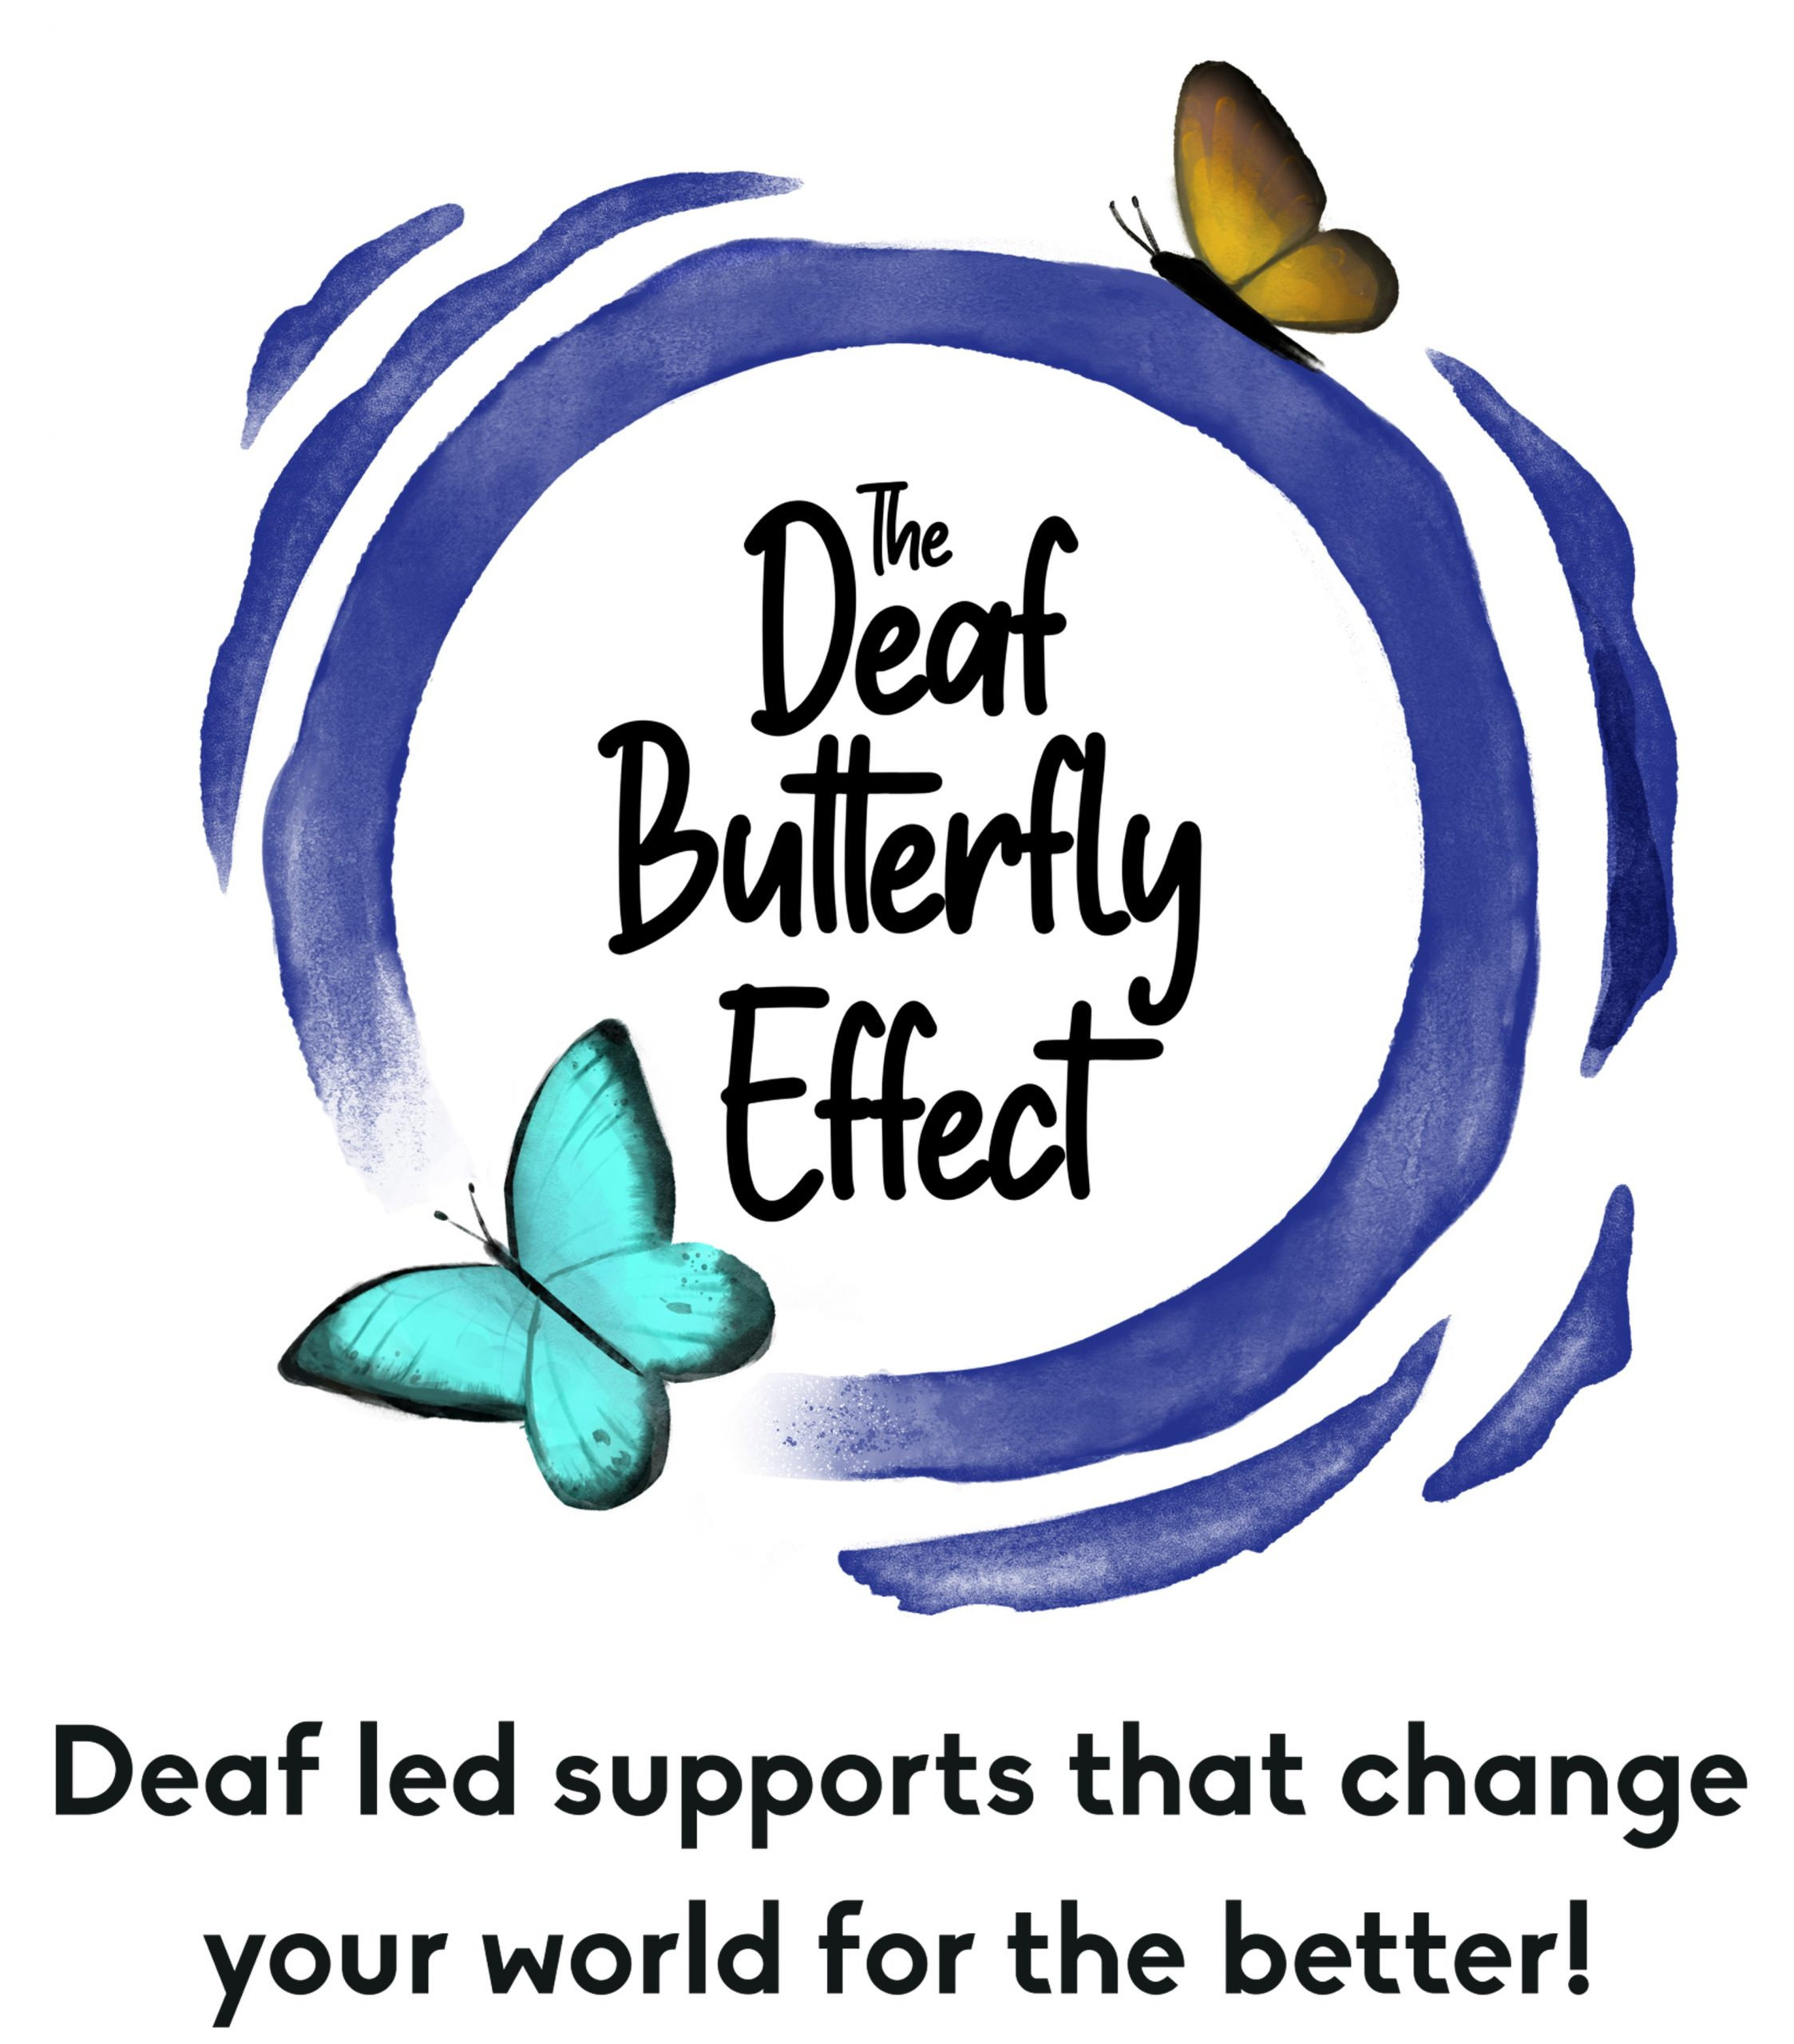 The Deaf Butterfly Effect